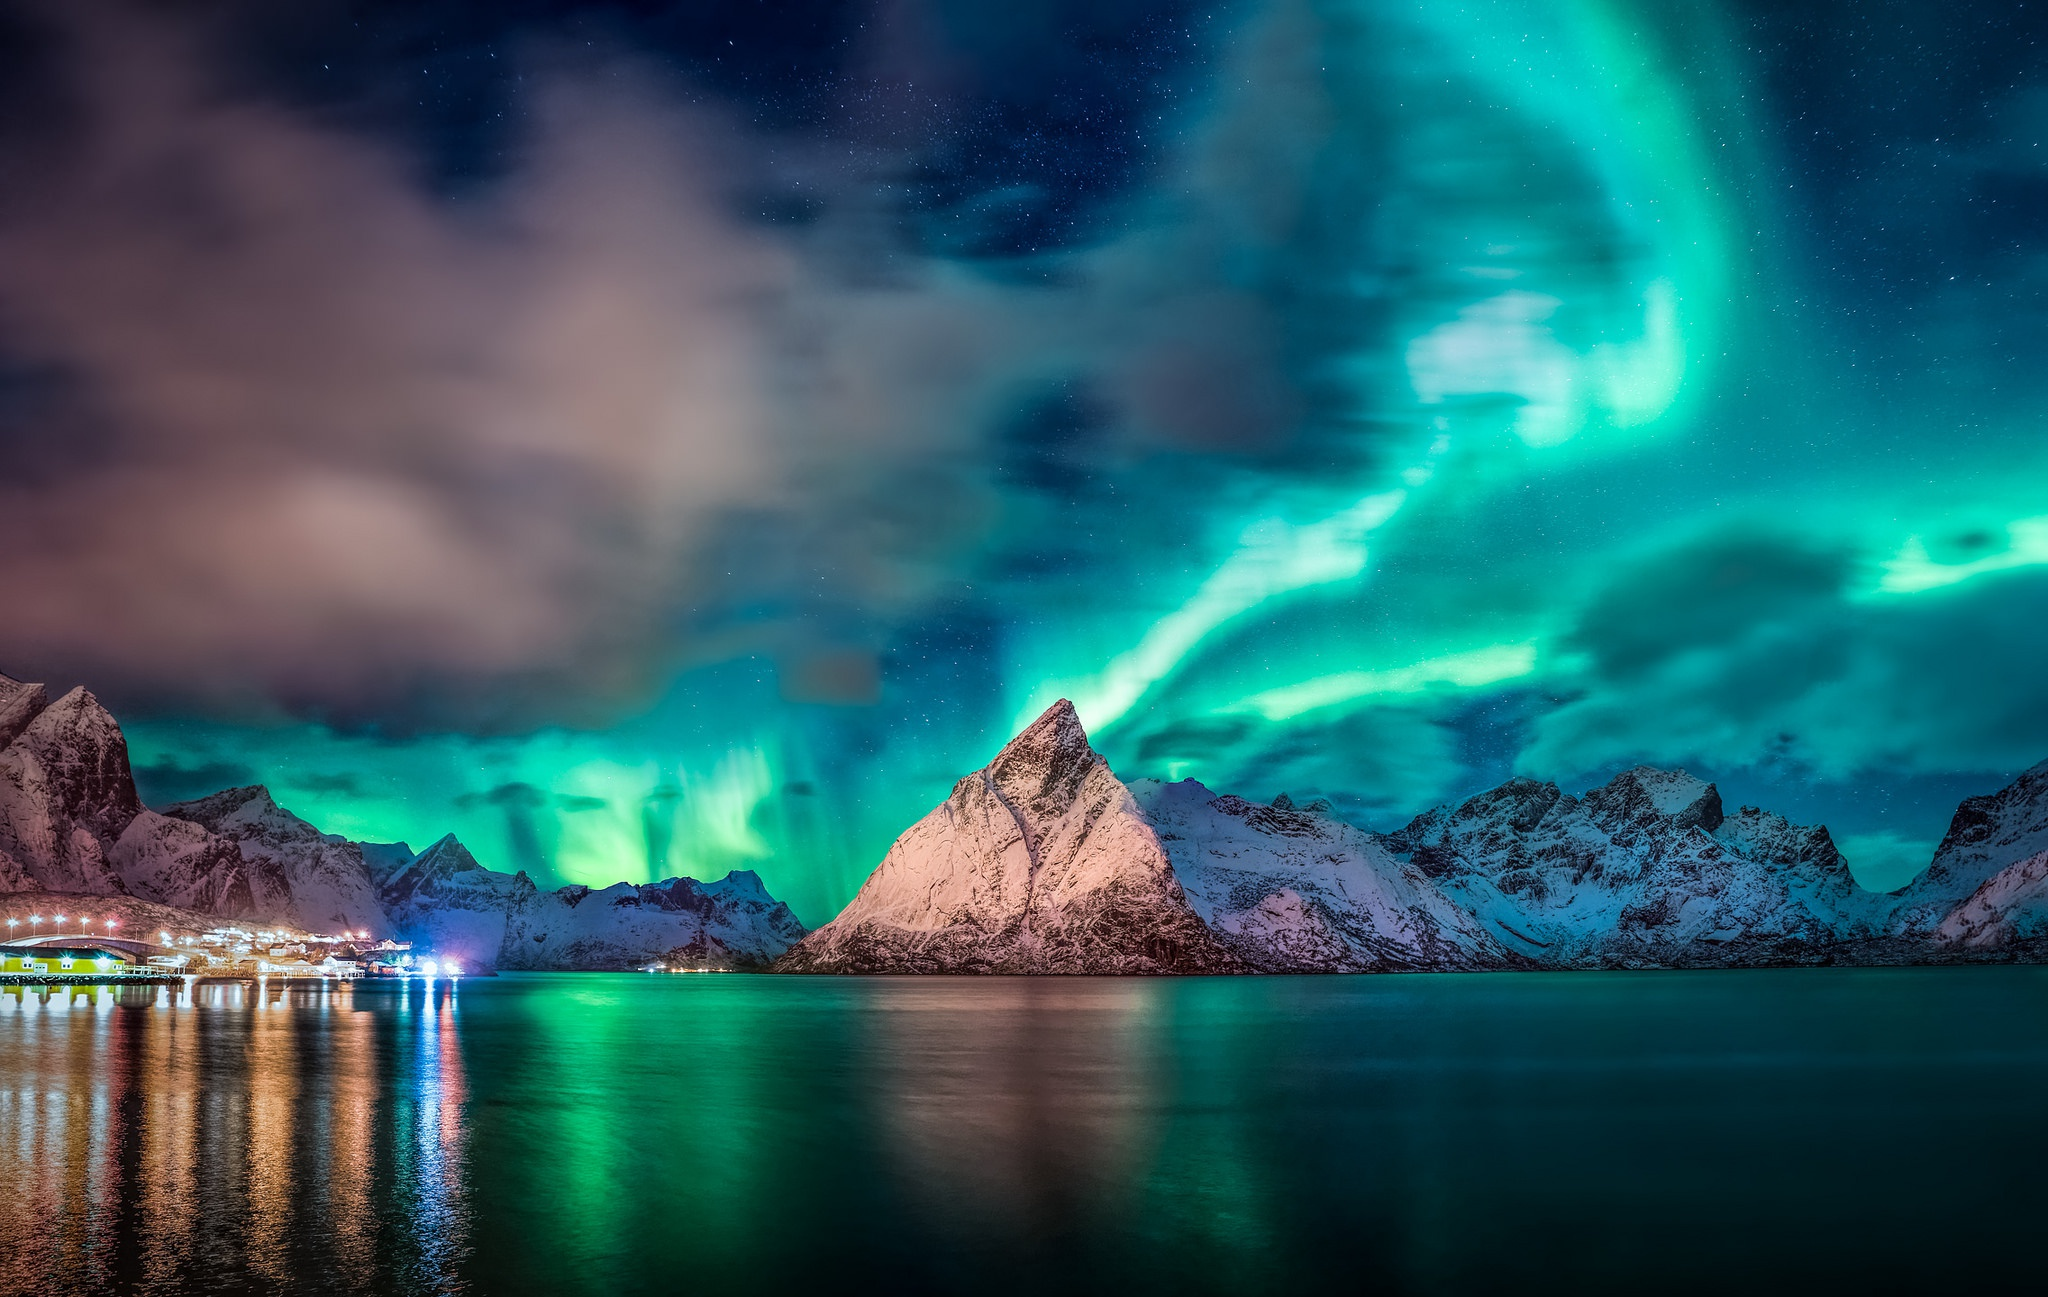 Aurora Reflection Over Mountains, HD Nature, 4k Wallpapers, Images, Backgrounds, Photos and Pictures